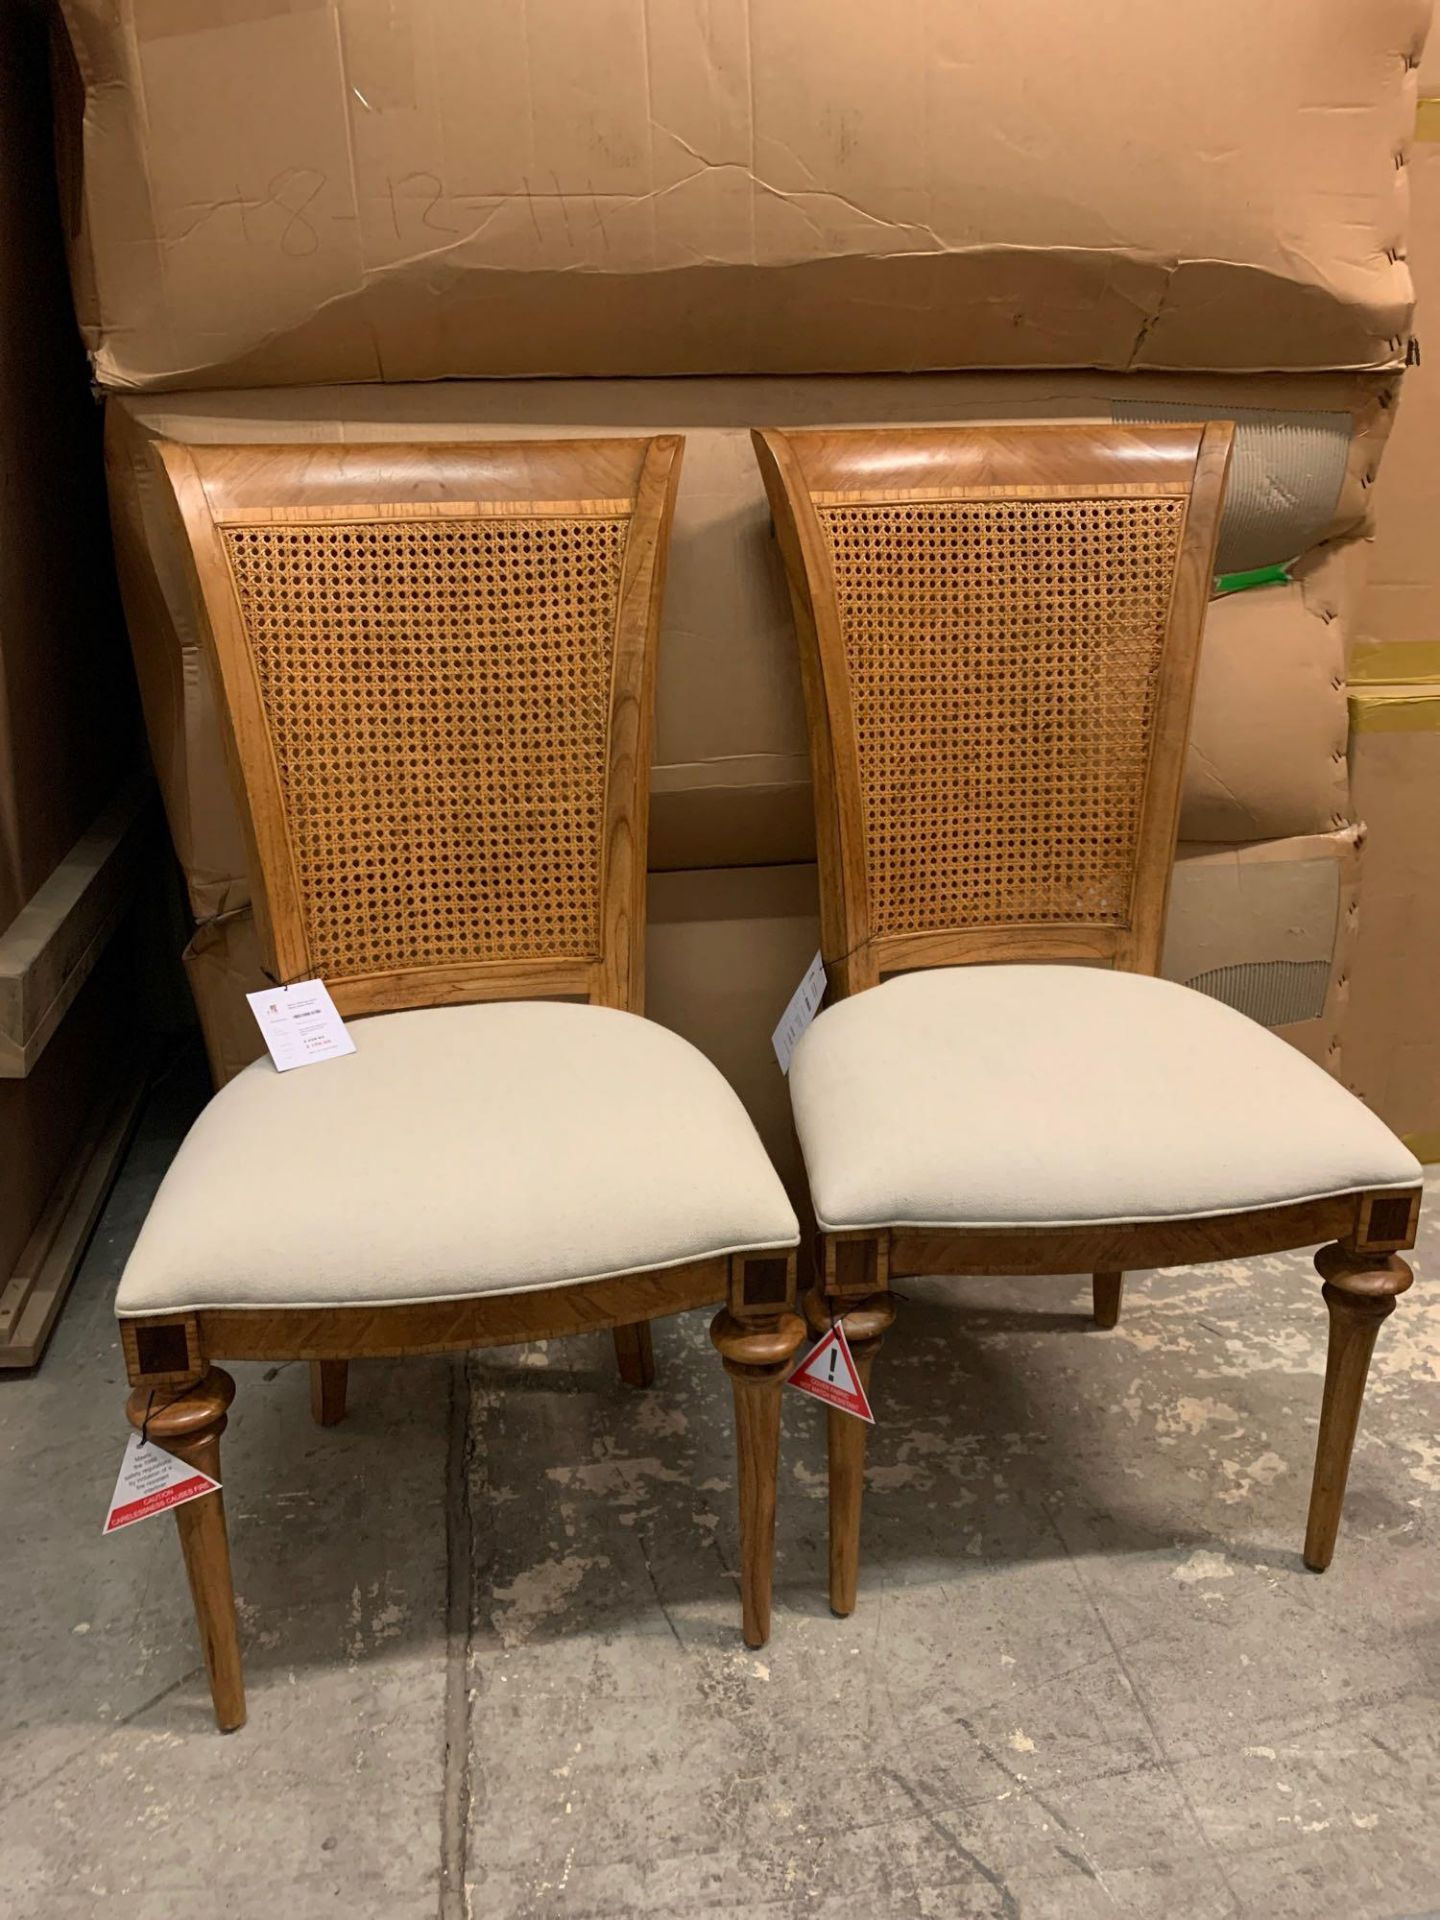 A Pair Of Spire Cane Back Side Chairs This Spire Cane Back Side Chair Combines Traditional English - Image 2 of 5